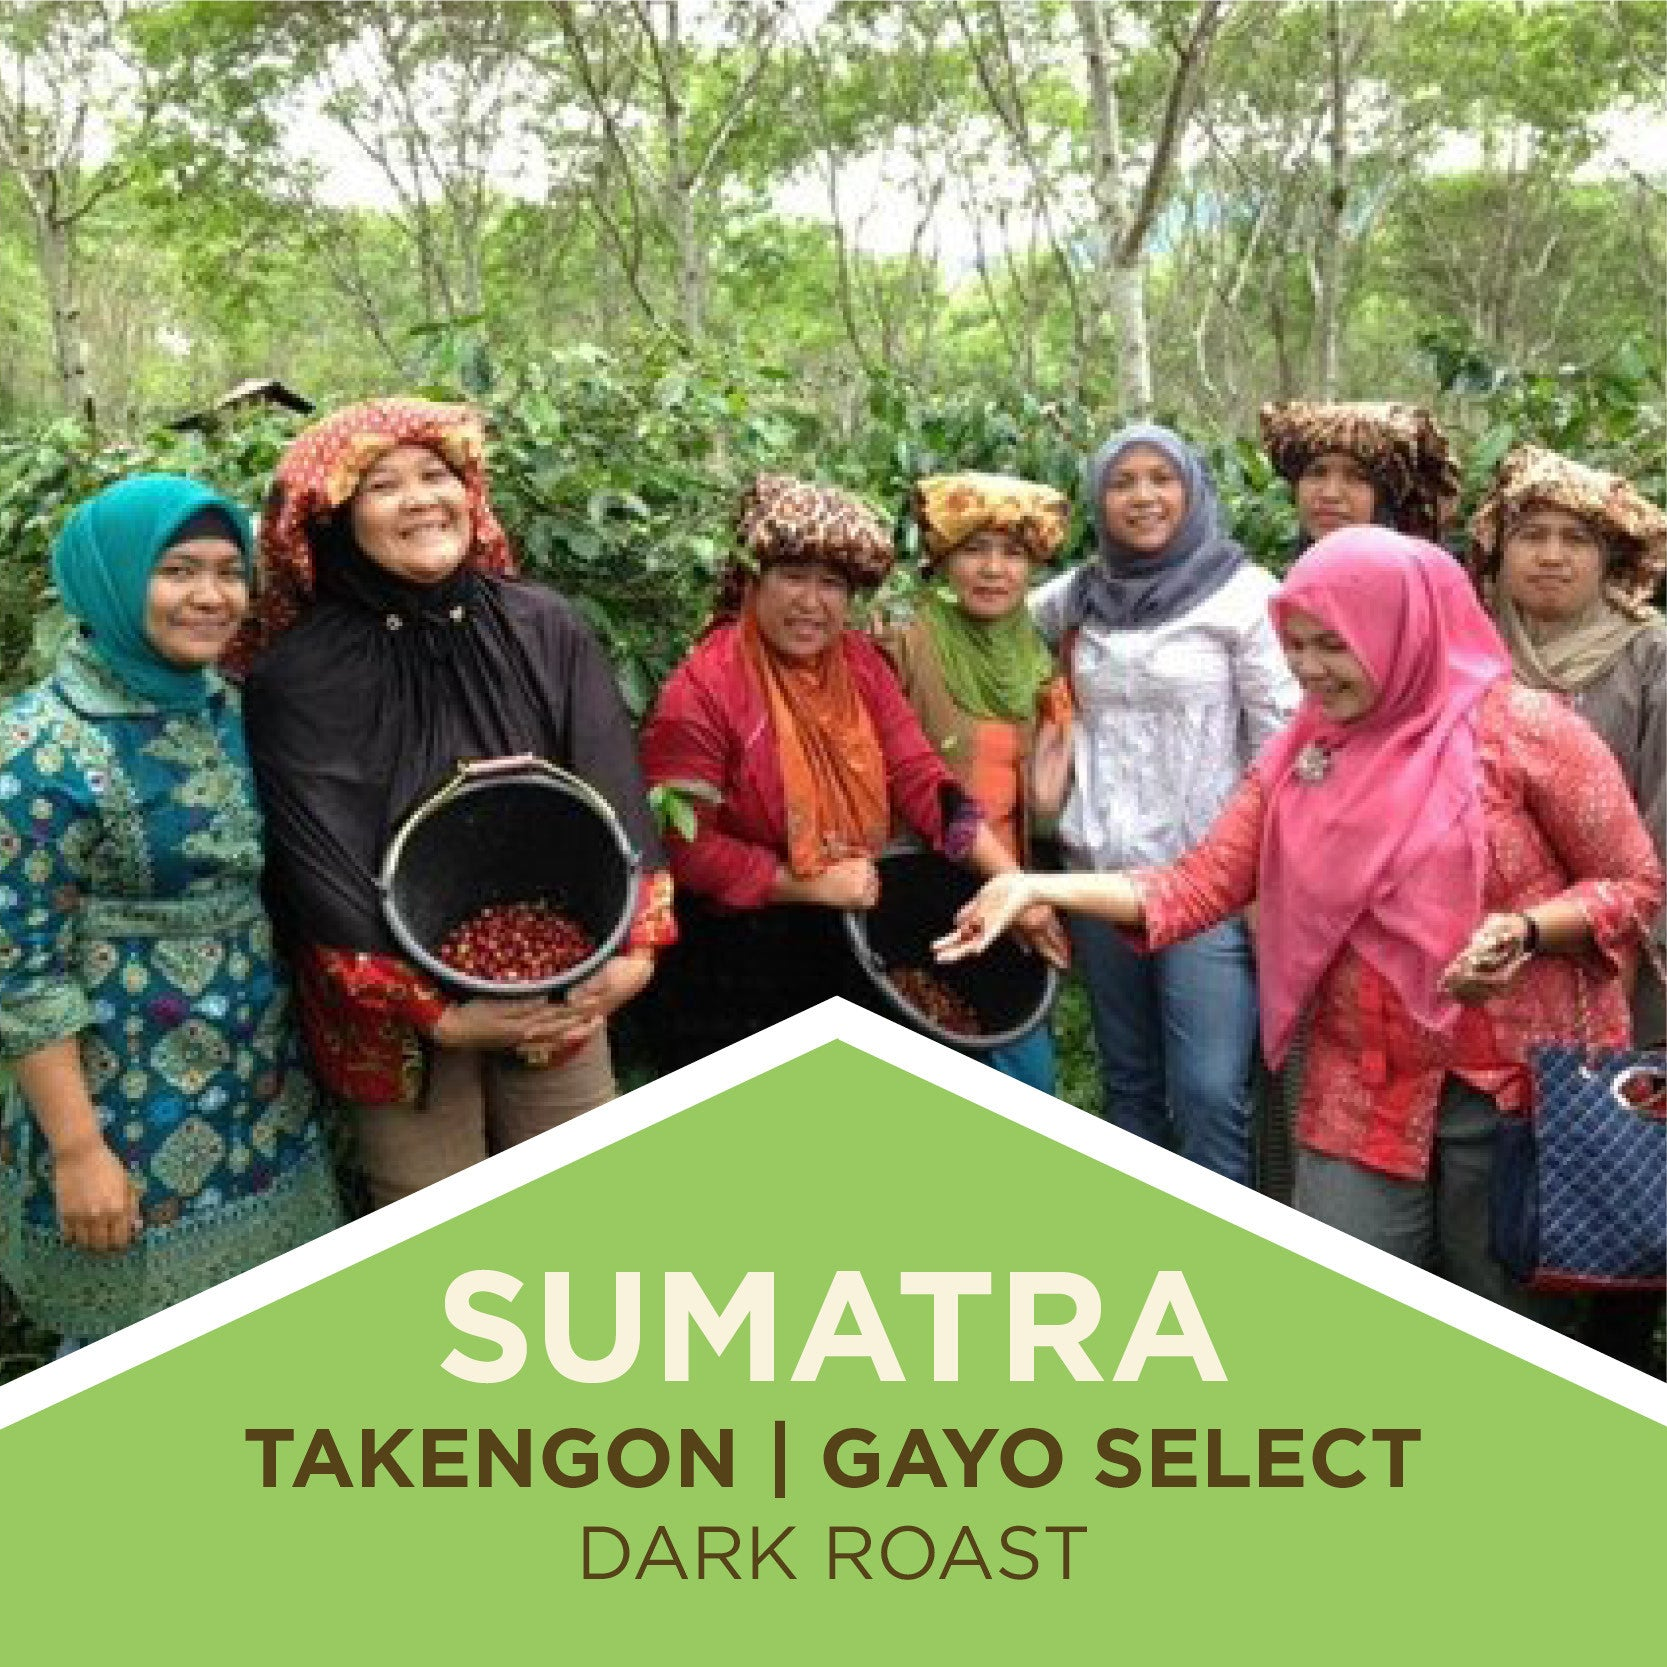 Sumatra | Takengon Gayo Select | Dark Roast